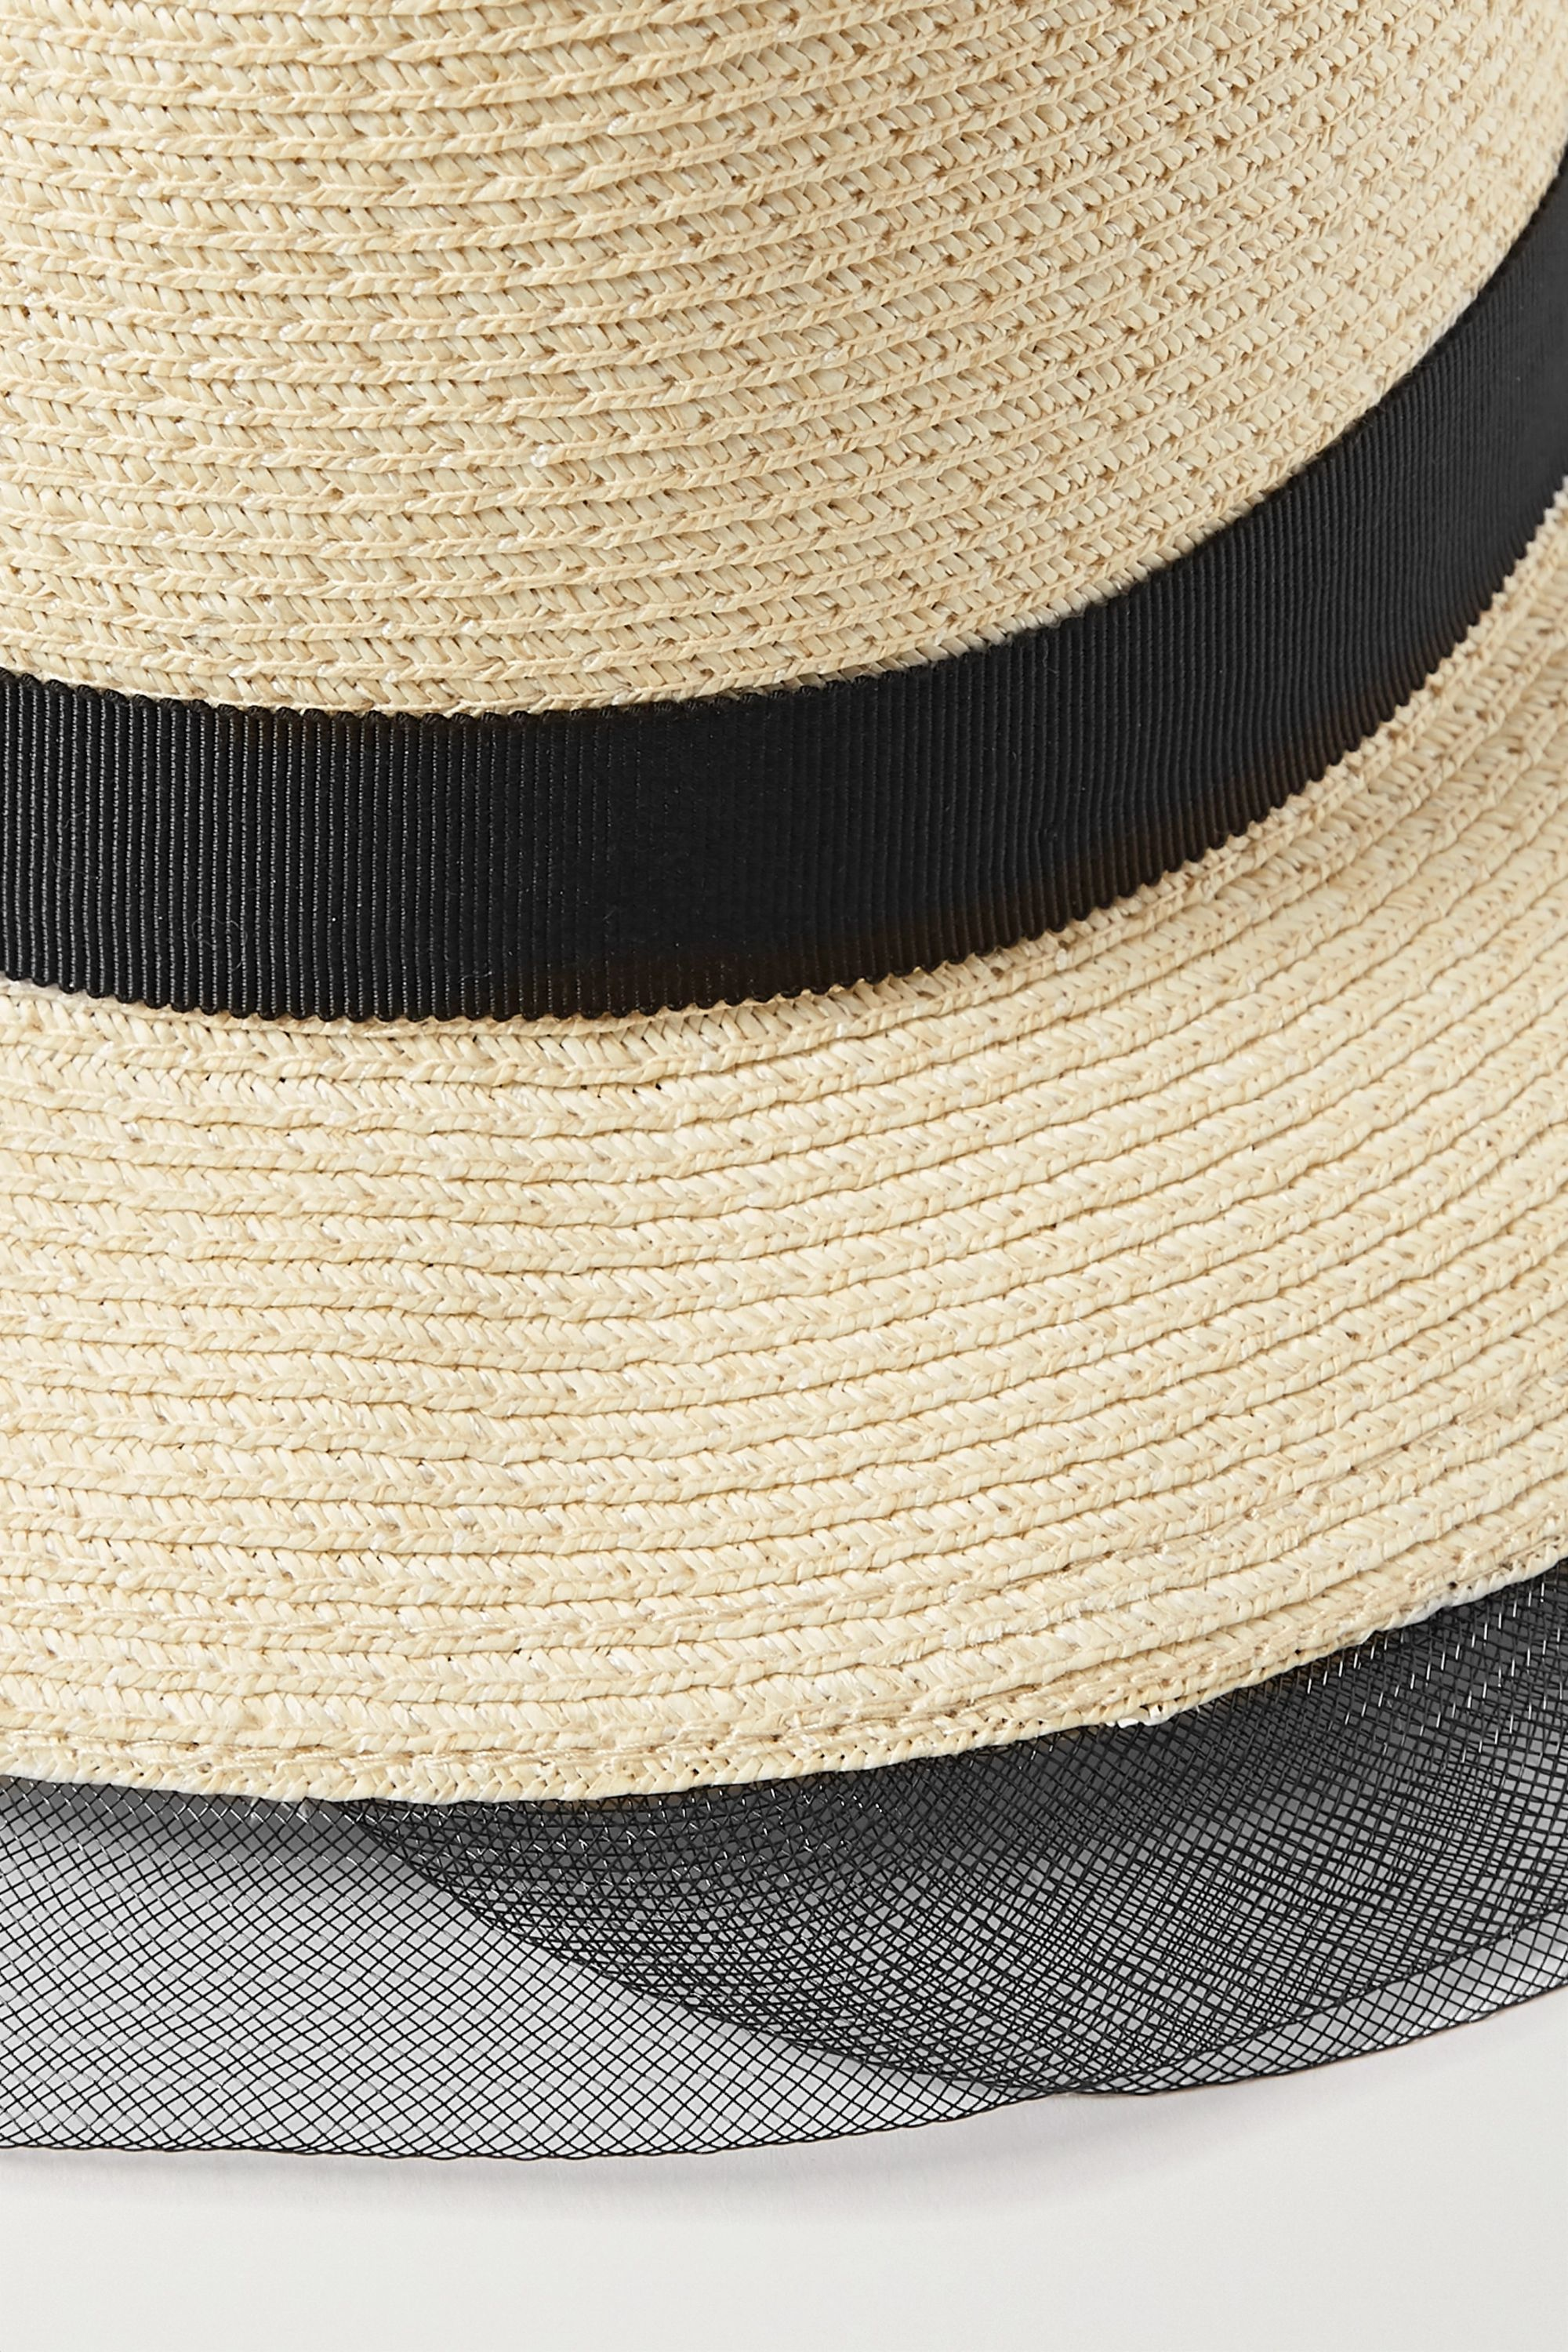 Eugenia Kim Courtney grosgrain and tulle-trimmed straw sunhat